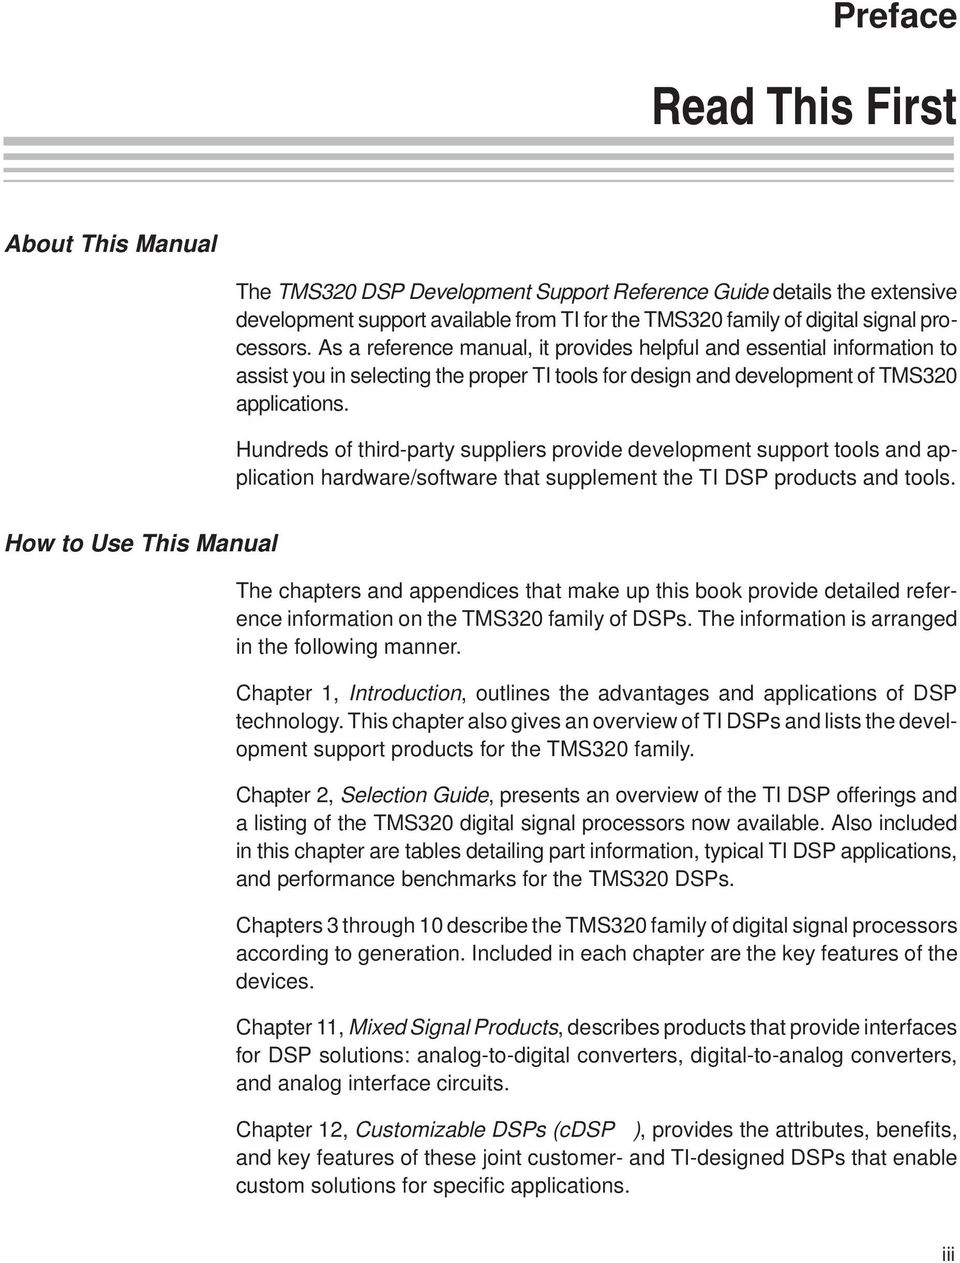 TMS320 DSP Development Support Reference Guide - PDF